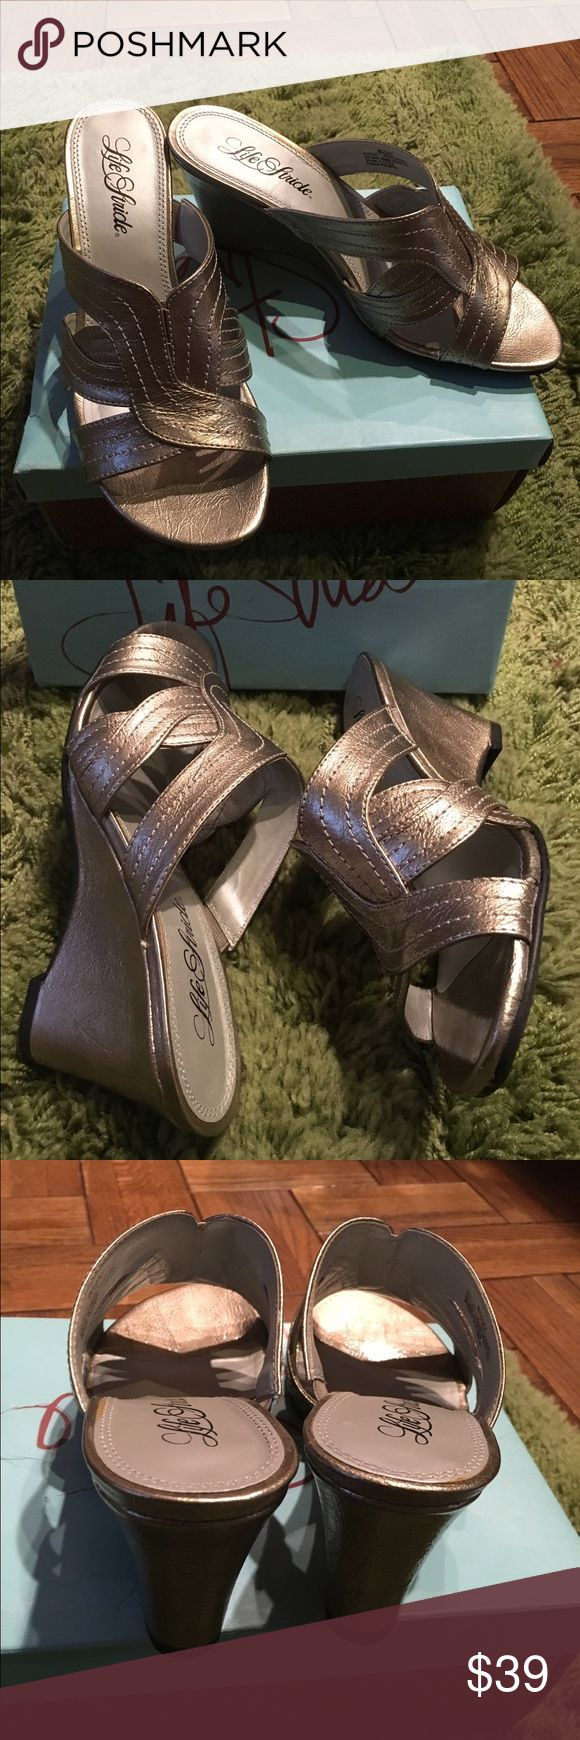 """BRAND New Life Stride Pewter 3"""" wedge sandals New Pewter sandals with strap design across front. Great looking shoe SZ 8.5 W for wider foot. Life Stride Shoes Sandals"""